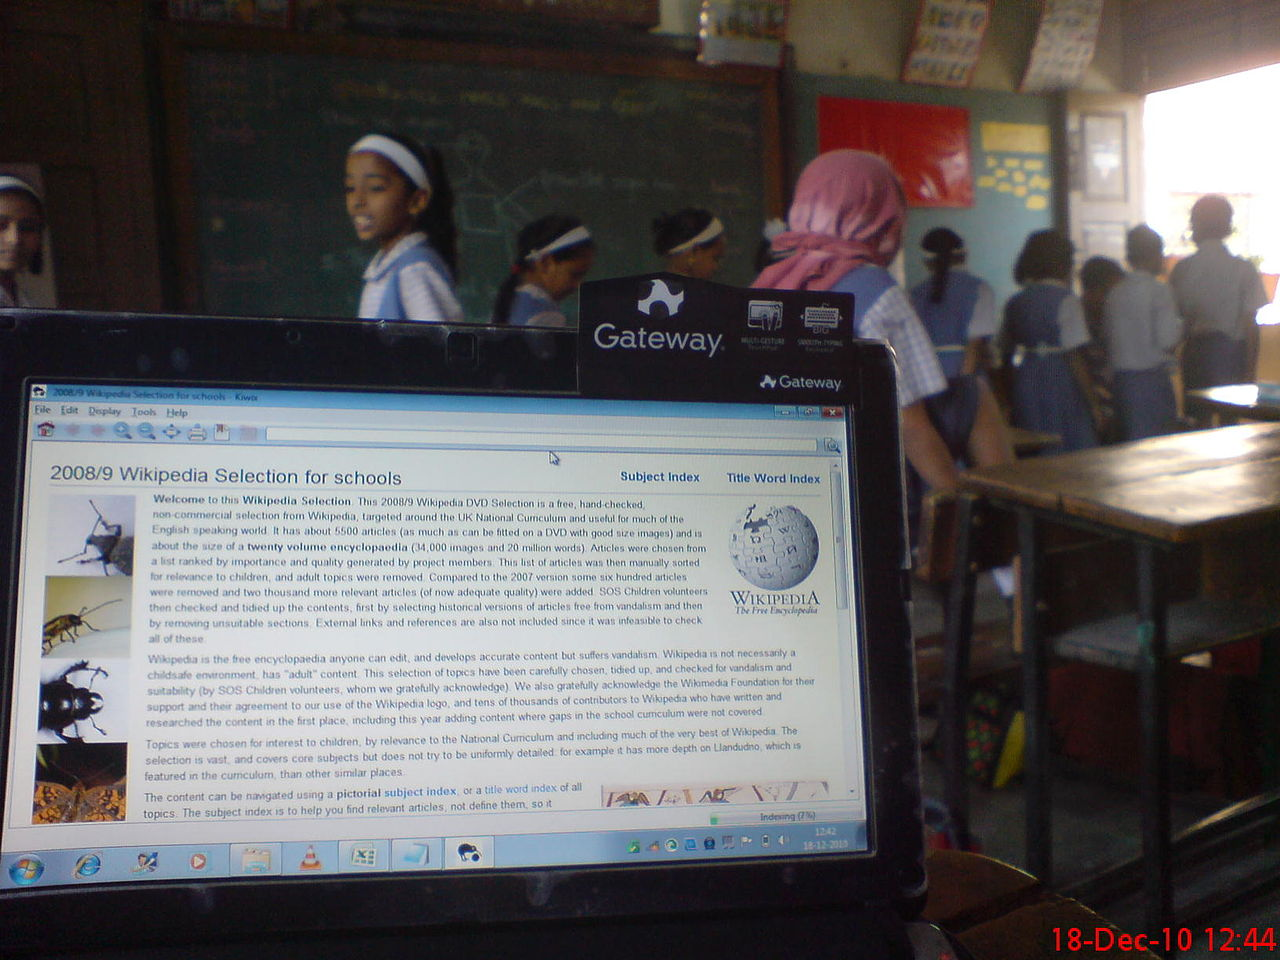 File:Wikipedia for Schools netbook shot in classroom.jpg